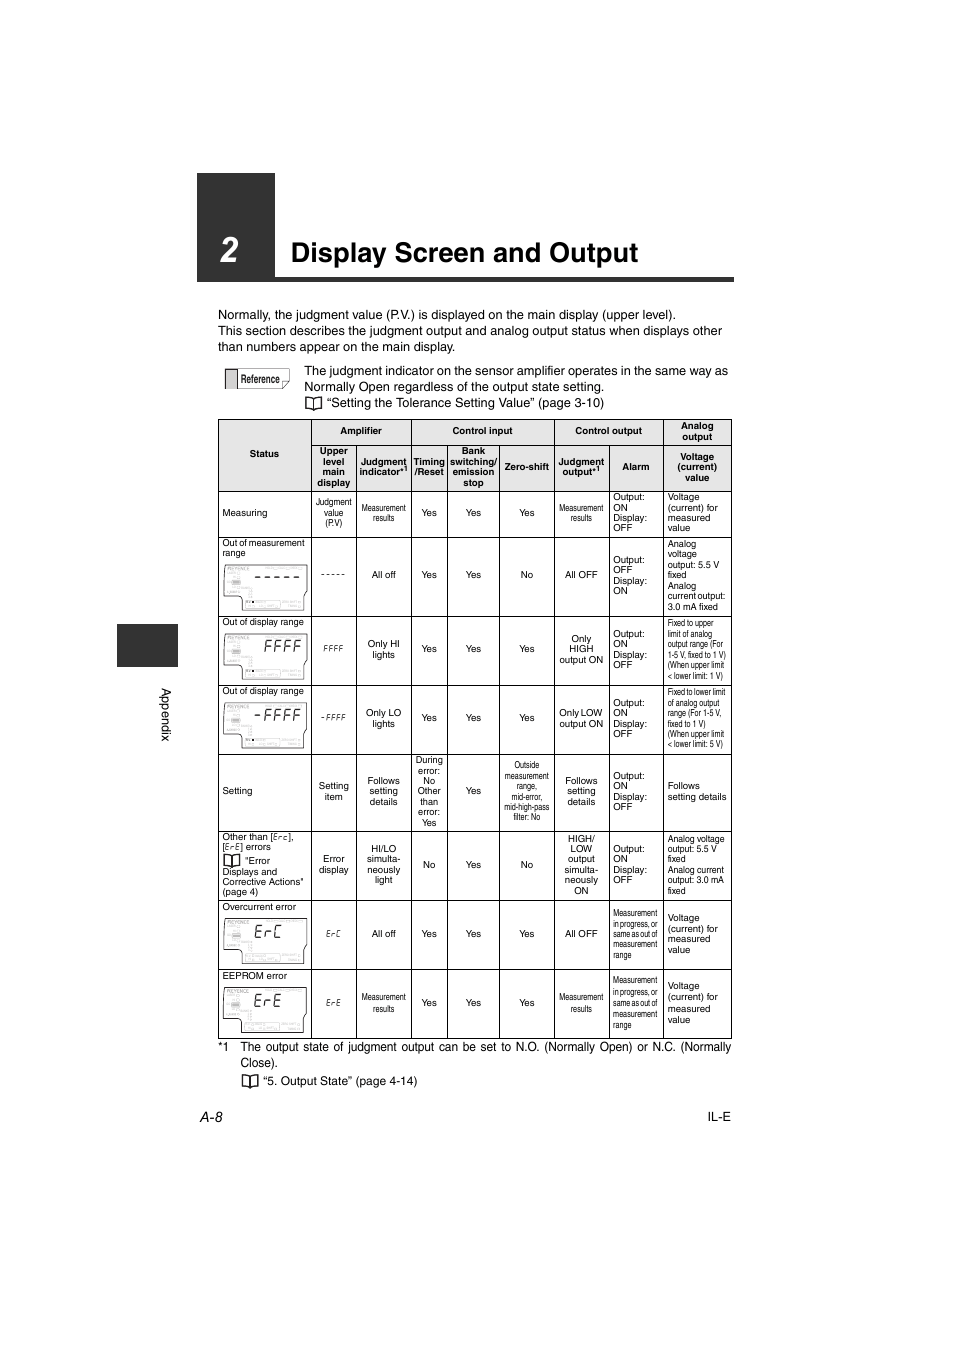 2 display screen and output, Display screen and output, Il